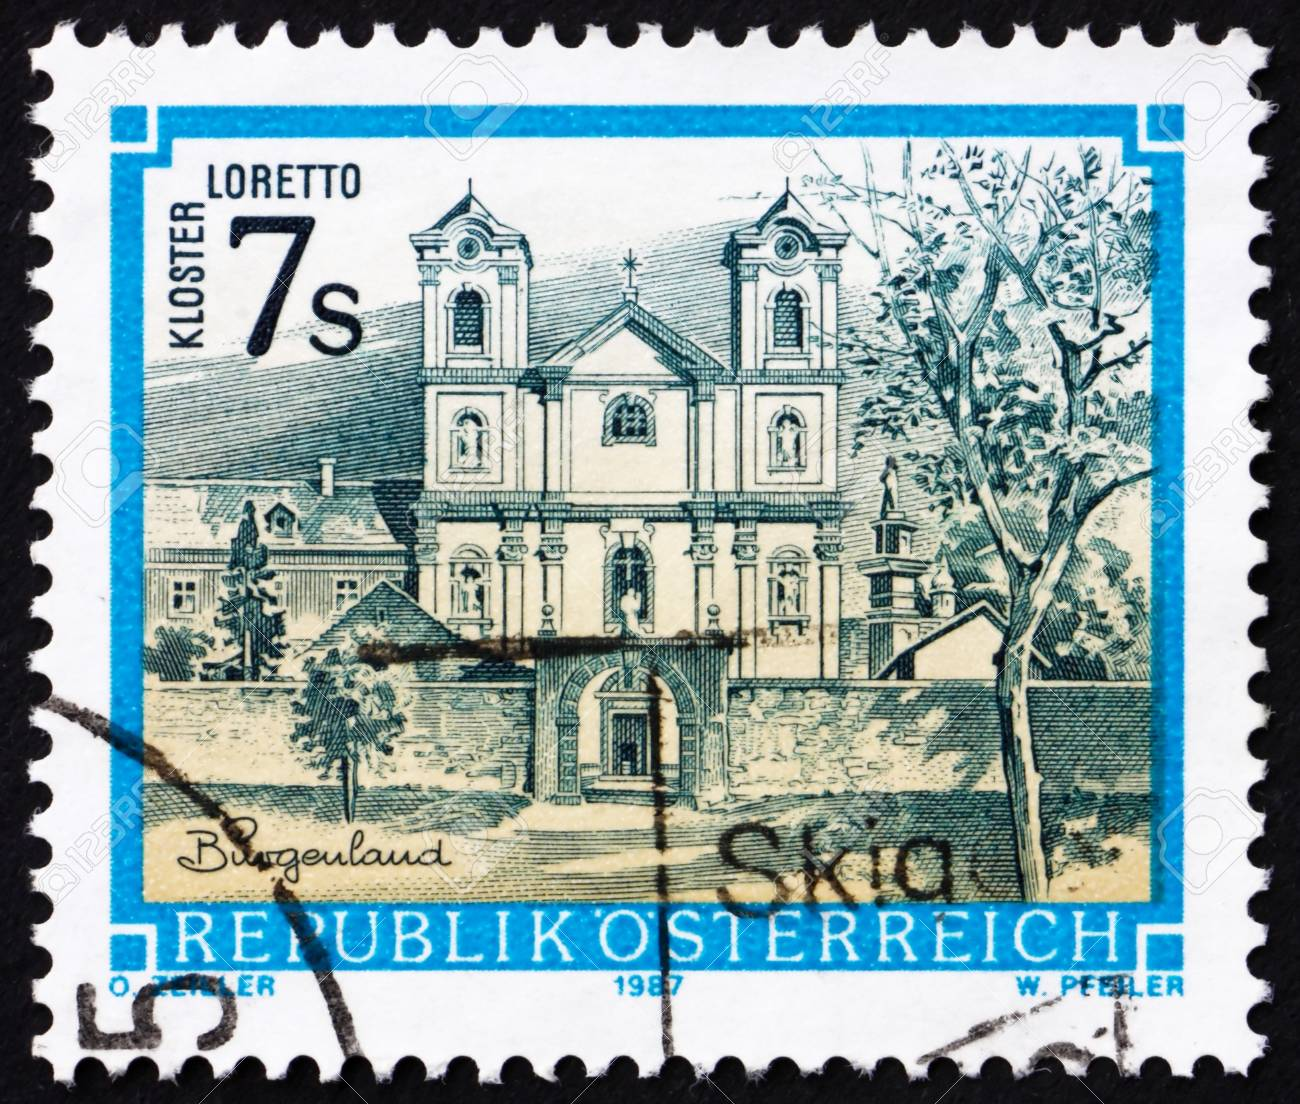 AUSTRIA - CIRCA 1987: a stamp printed in the Austria shows Loretto Monastery, Burgenland, circa 1987 Stock Photo - 16224781